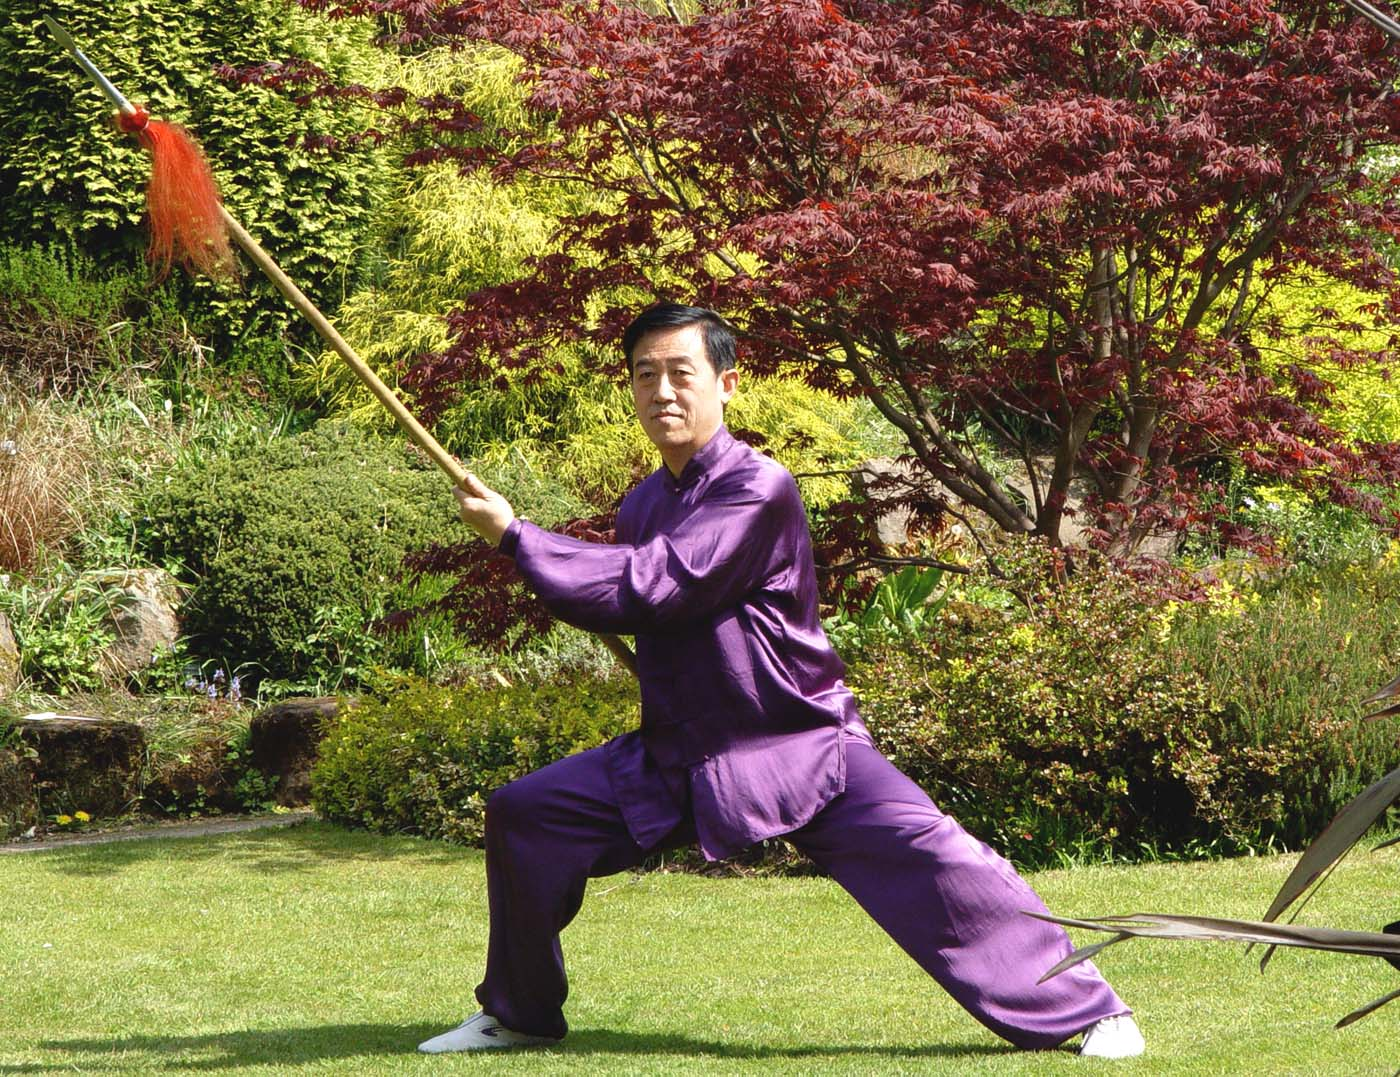 Great Grand Master of Chen-Taijiquan, Chen-Taiji Chen Zhenglei speer